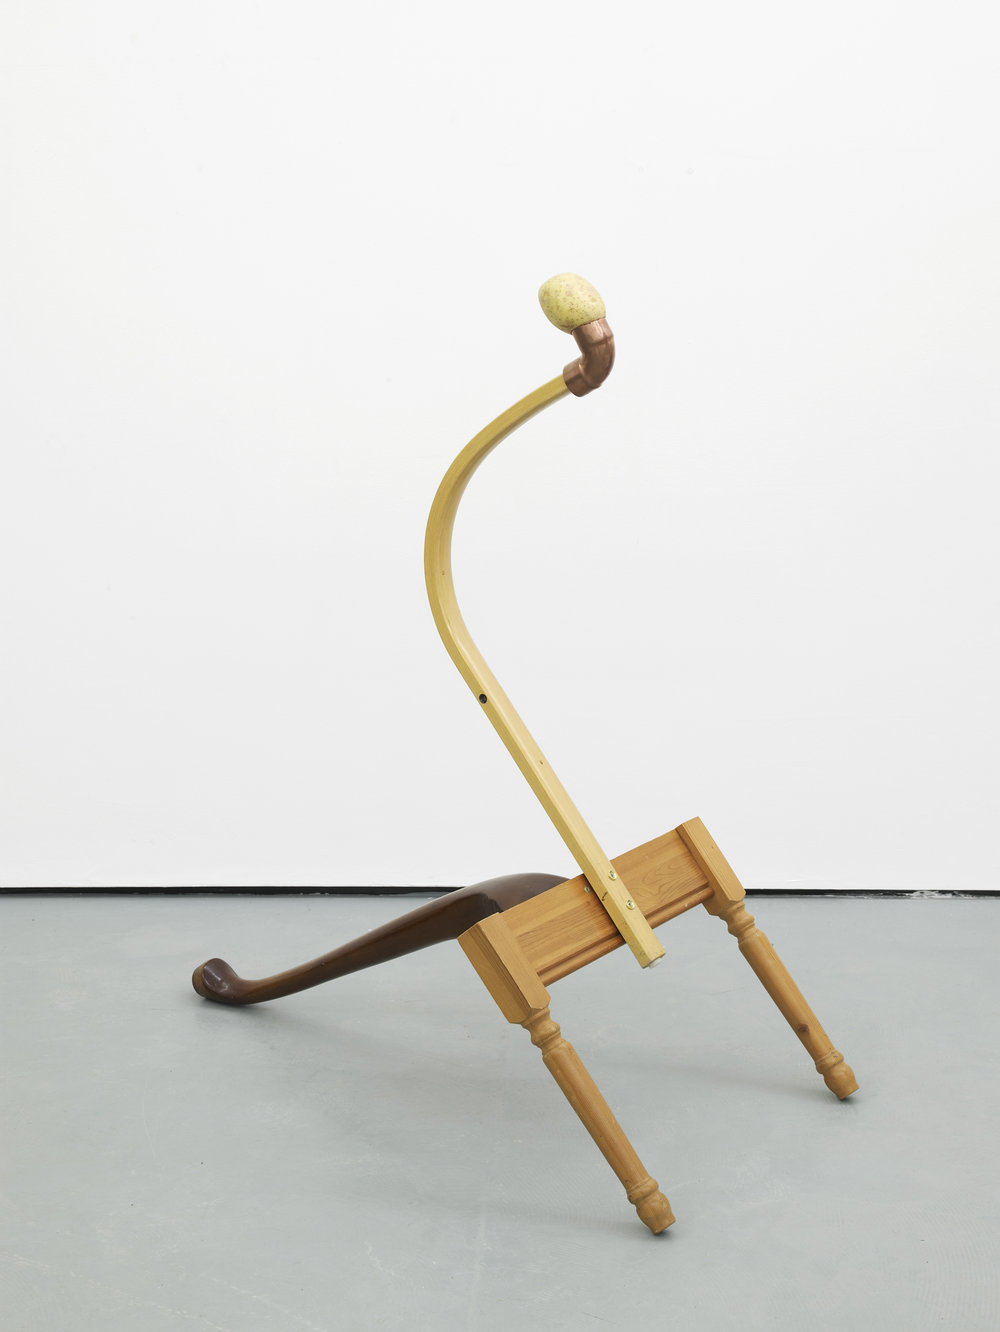 Catachresis ♯72 Eye of the potato, elbow of the pipe, arm of the chair and legs of the tables 2016 Found materials 110 x 56 x 98 cm / 43.3 x 22 x 38.6 in